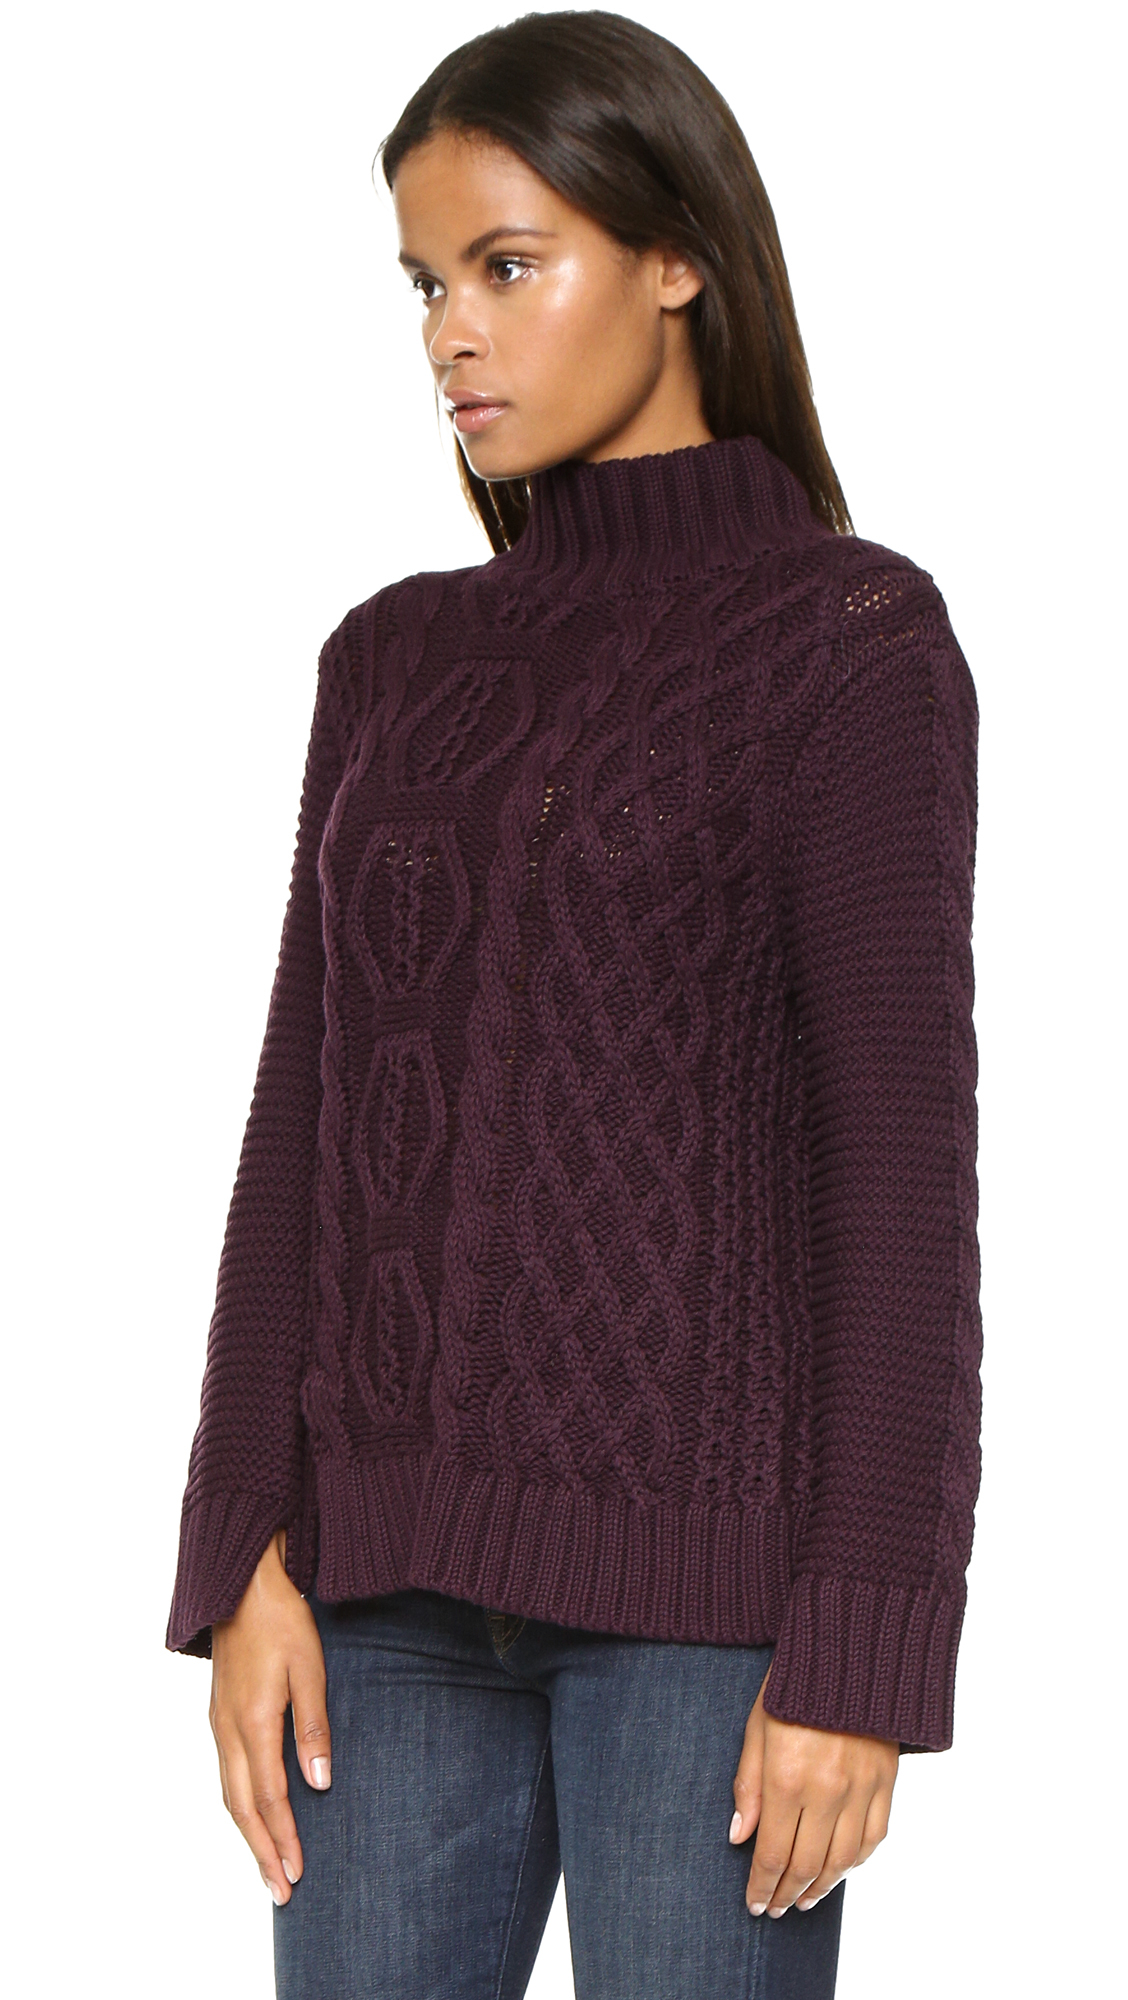 525 america Hand Knit Mock Turtleneck Sweater - Lilac Ice in ...